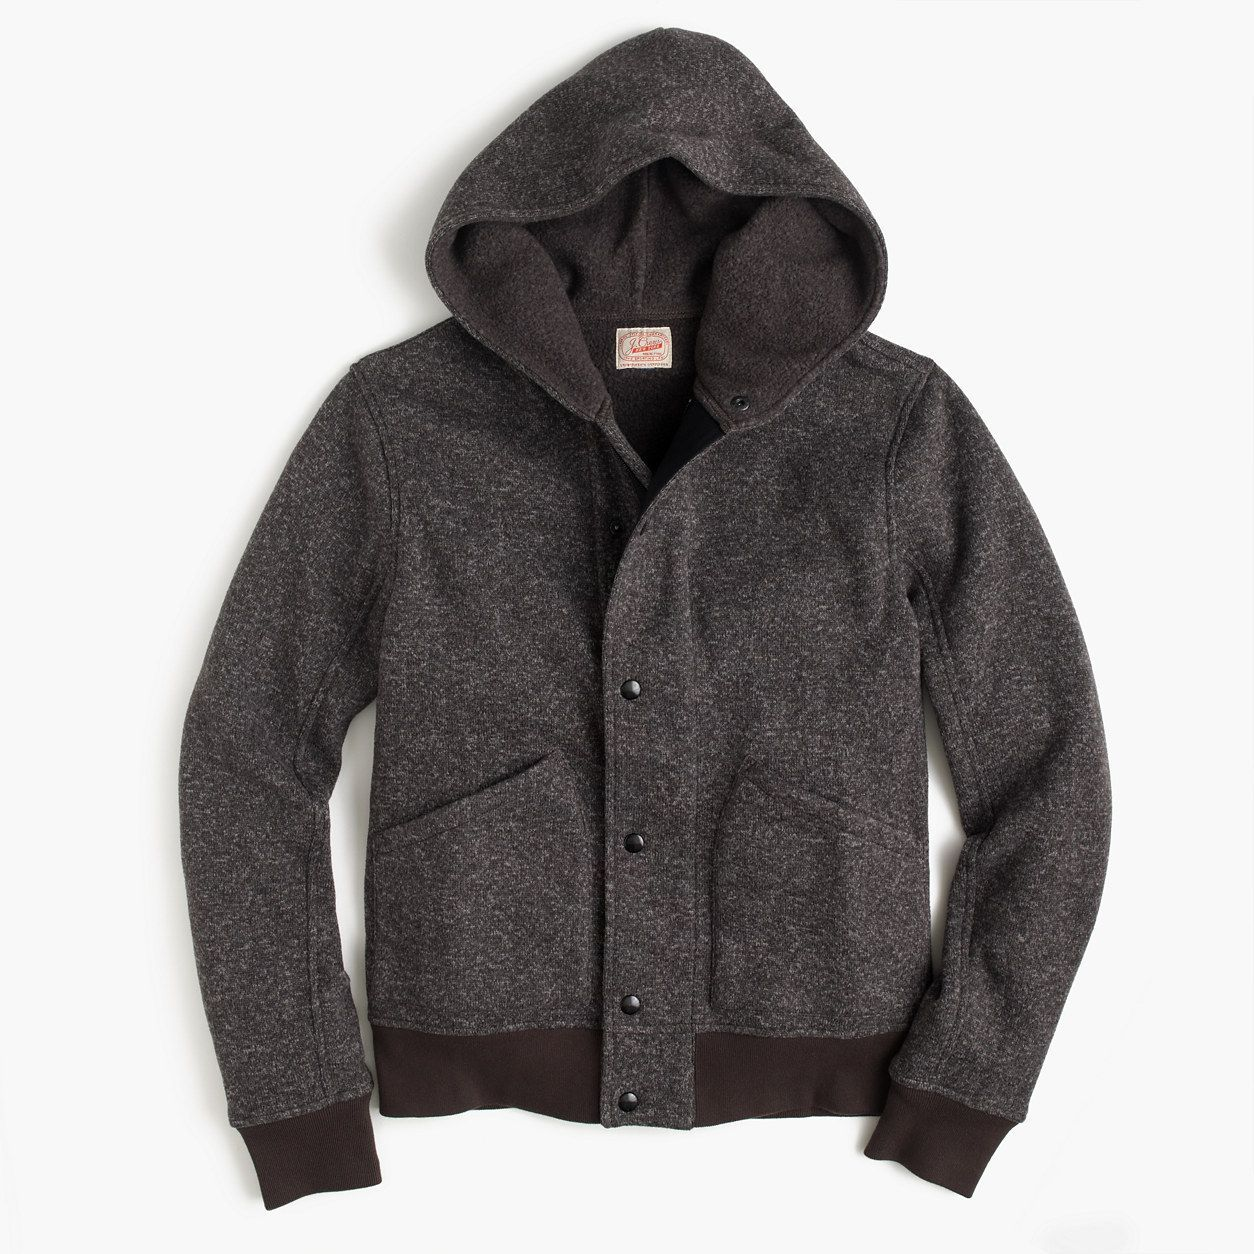 J.Crew Mens Summit Fleece Full-Zip Hoodie (Size L)